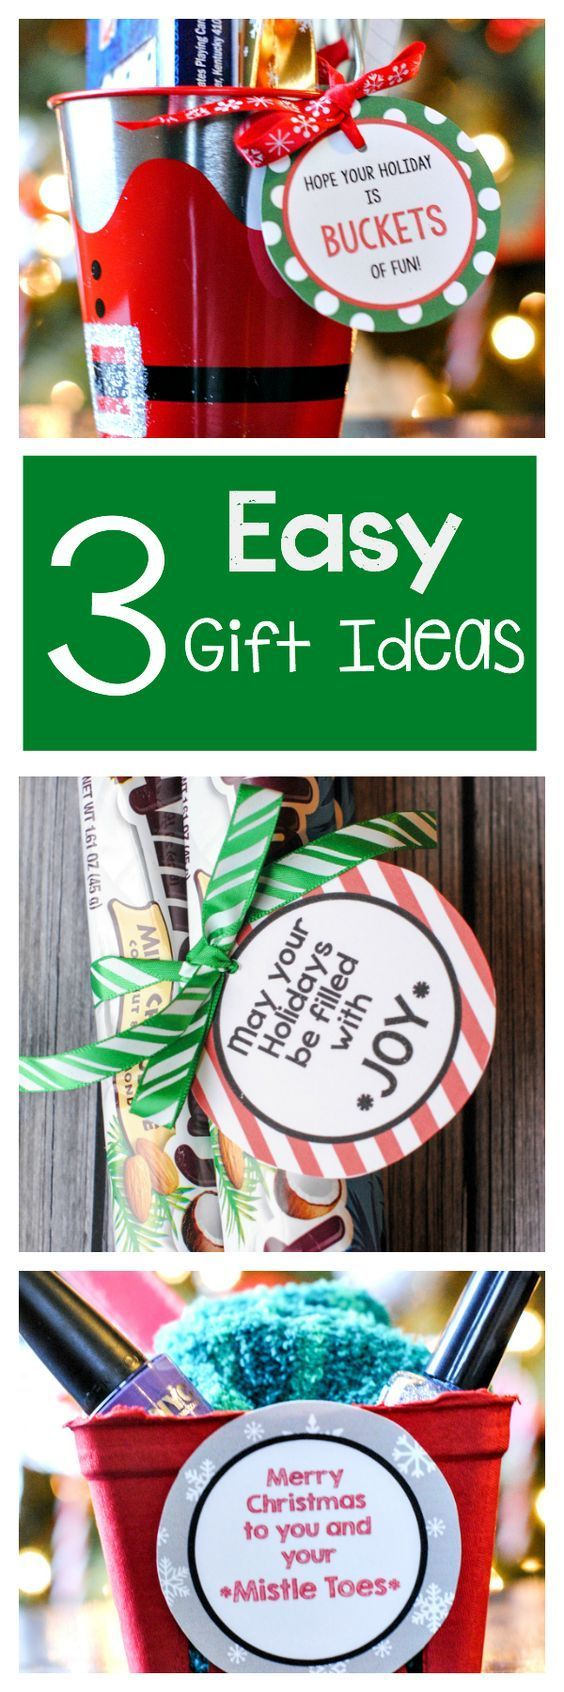 3 Easy Gift Ideas with Free Printable Gift Tags! Grab a bucket, some Almond Joy candies or some Nail Polish and pedicure supplies and attach her cute FREE Printable Gift tags with these cute ideas! | Crazy Little Projects